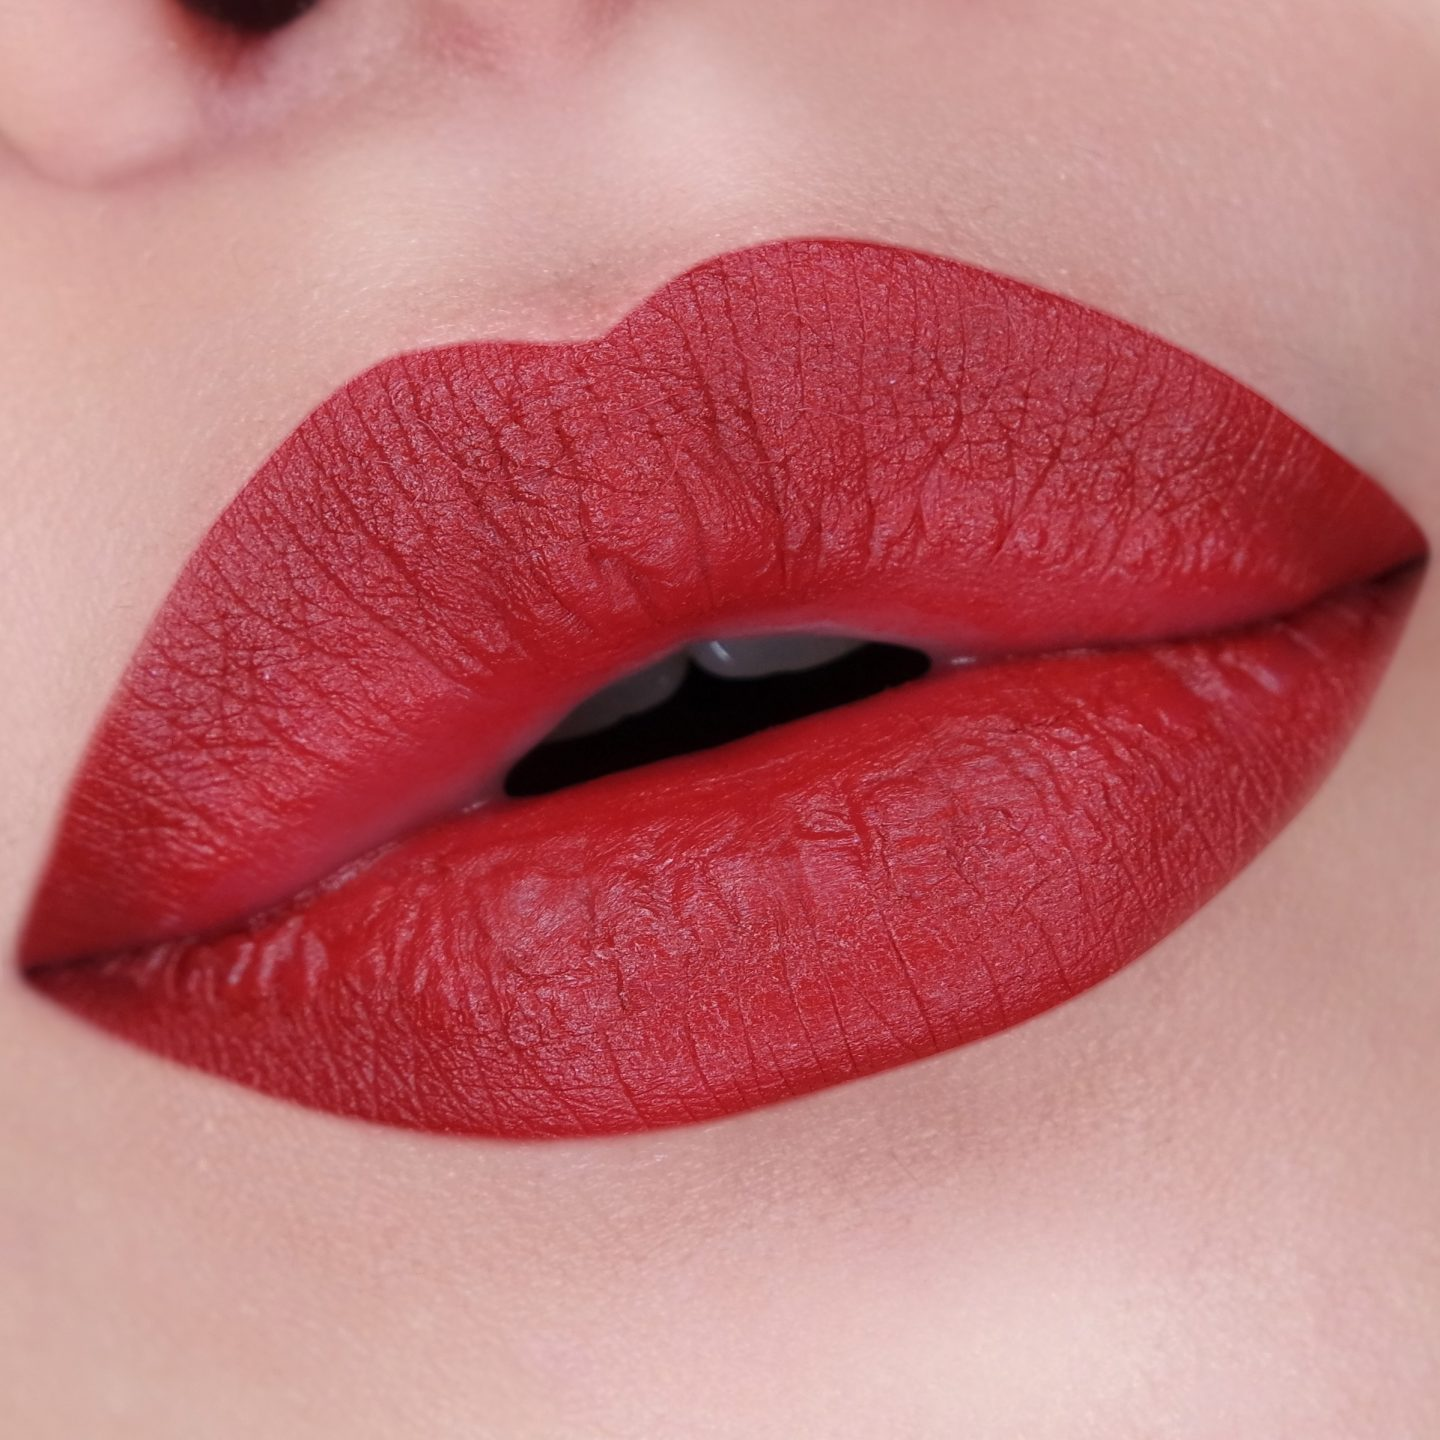 Estée Lauder Pure Color Love Lipstick in Burning Red Swatch